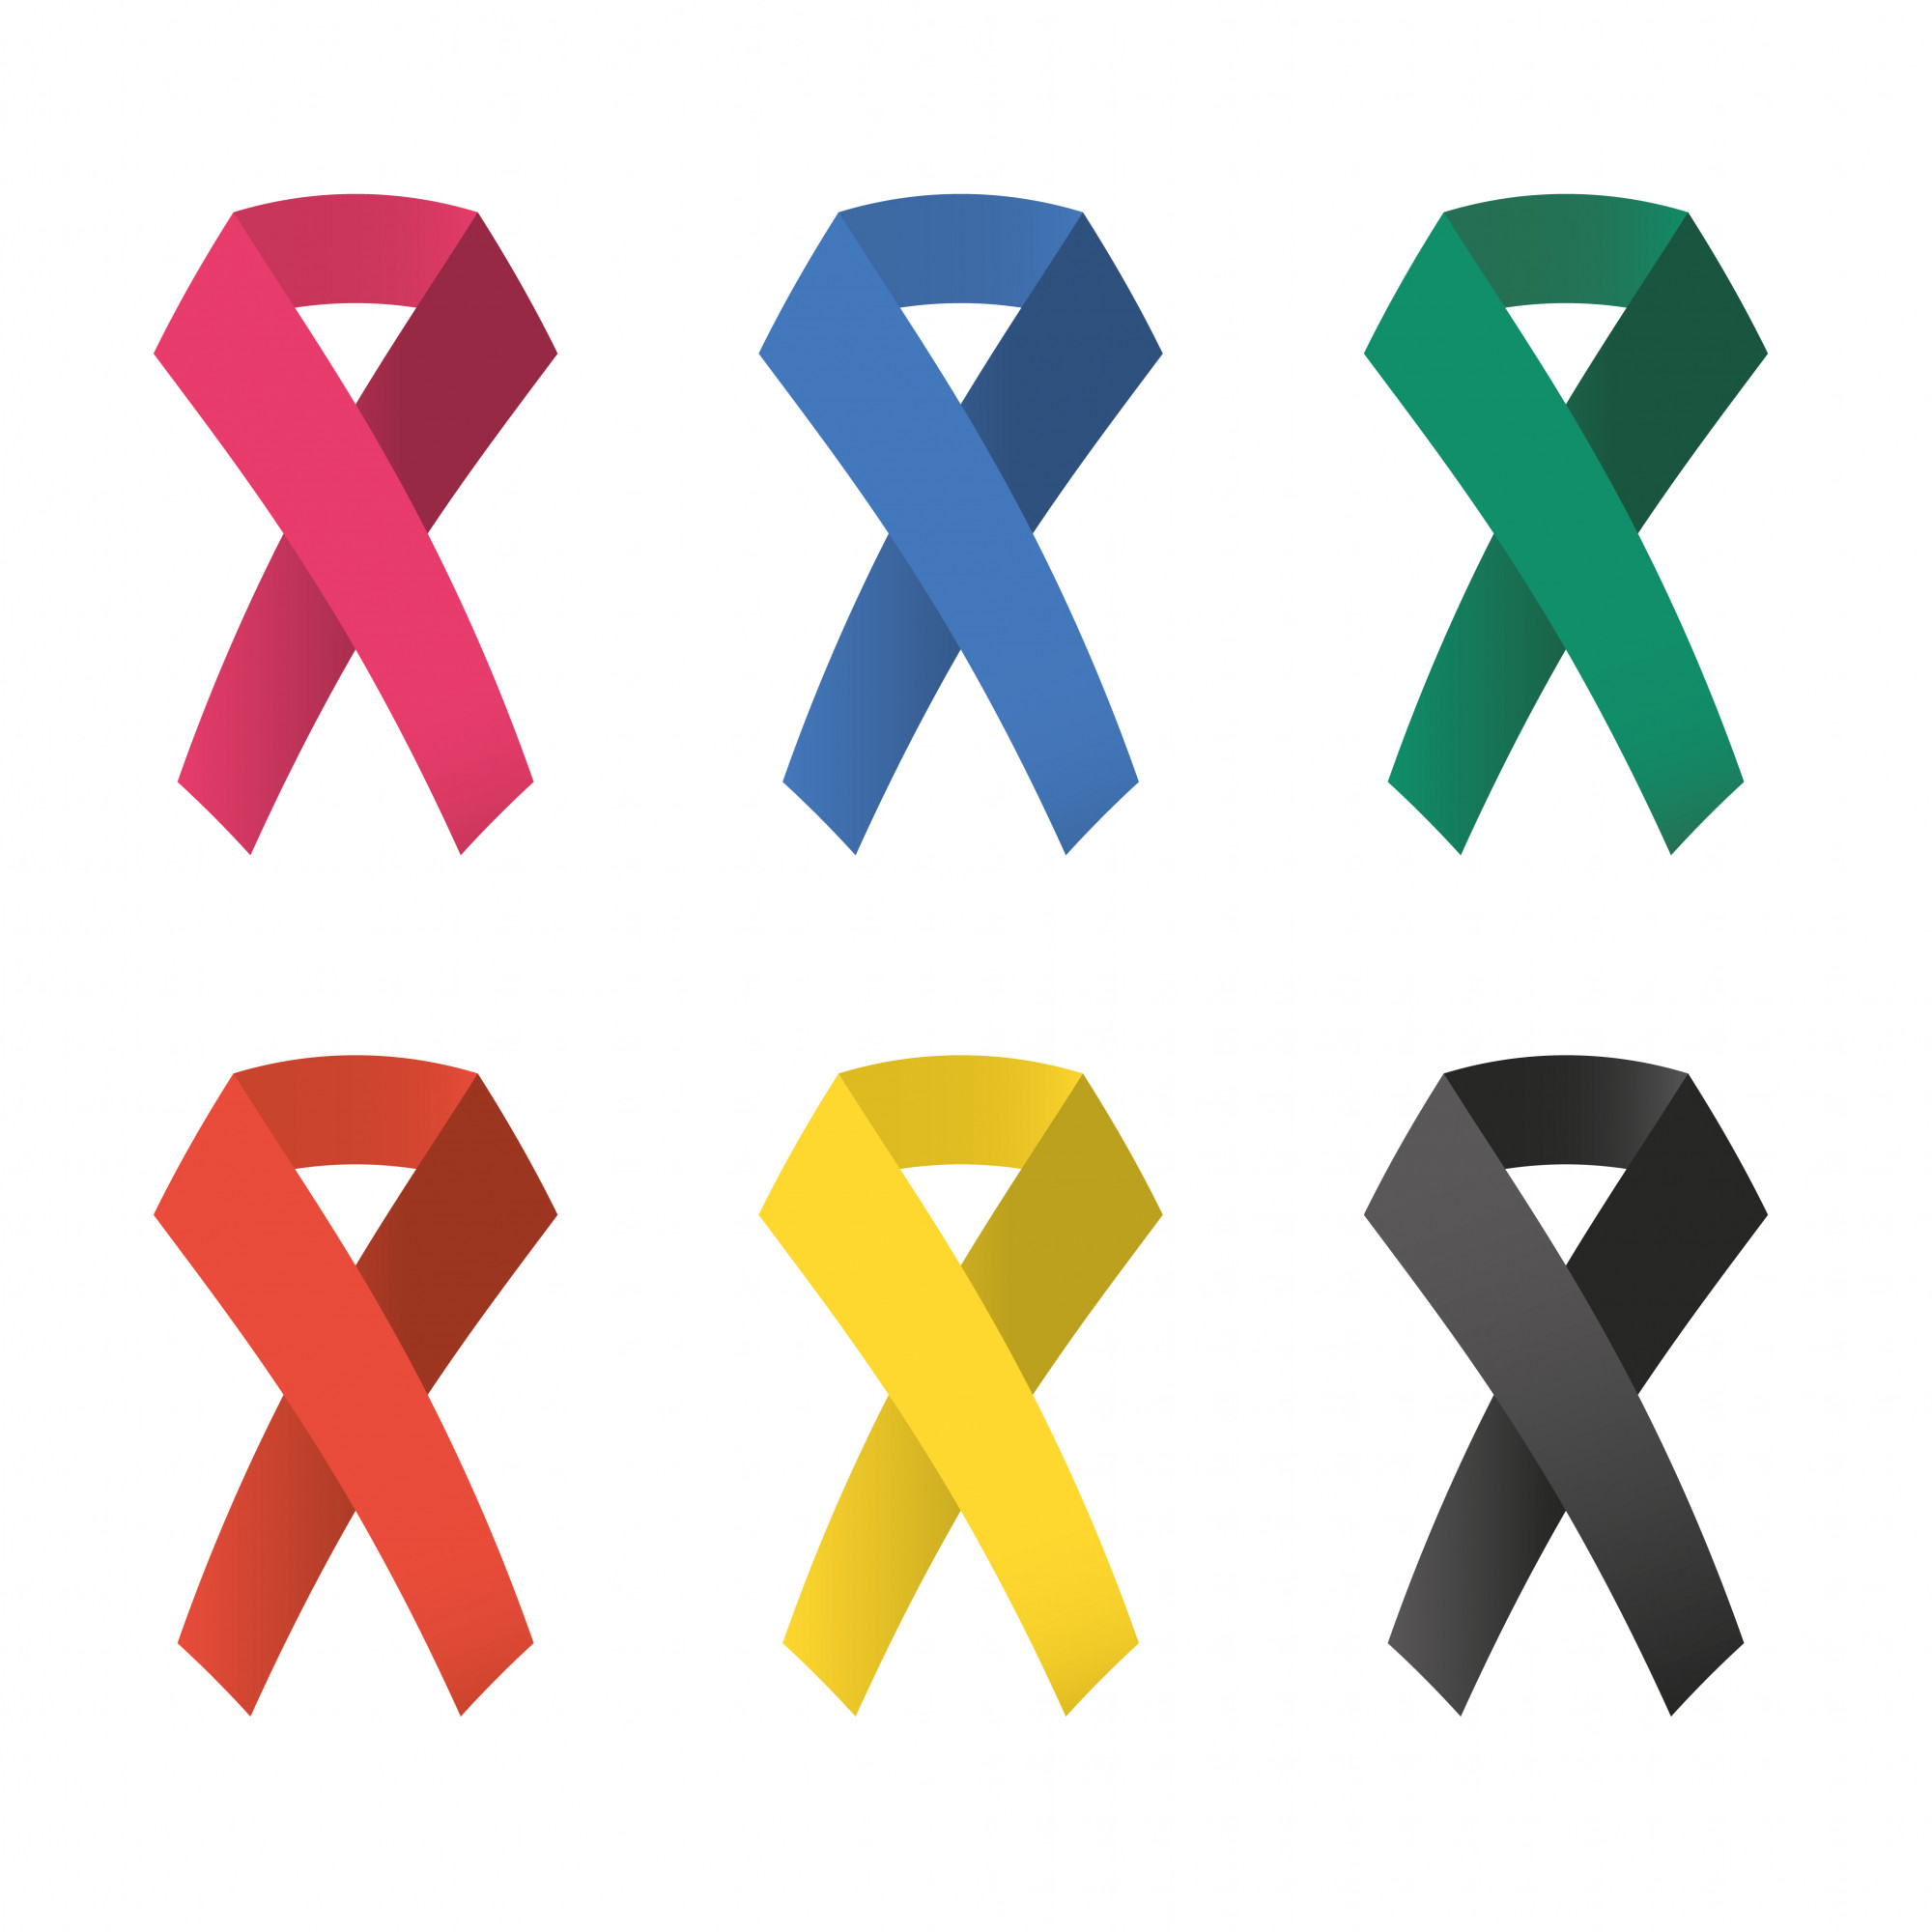 Collection of 6 color awareness ribbons